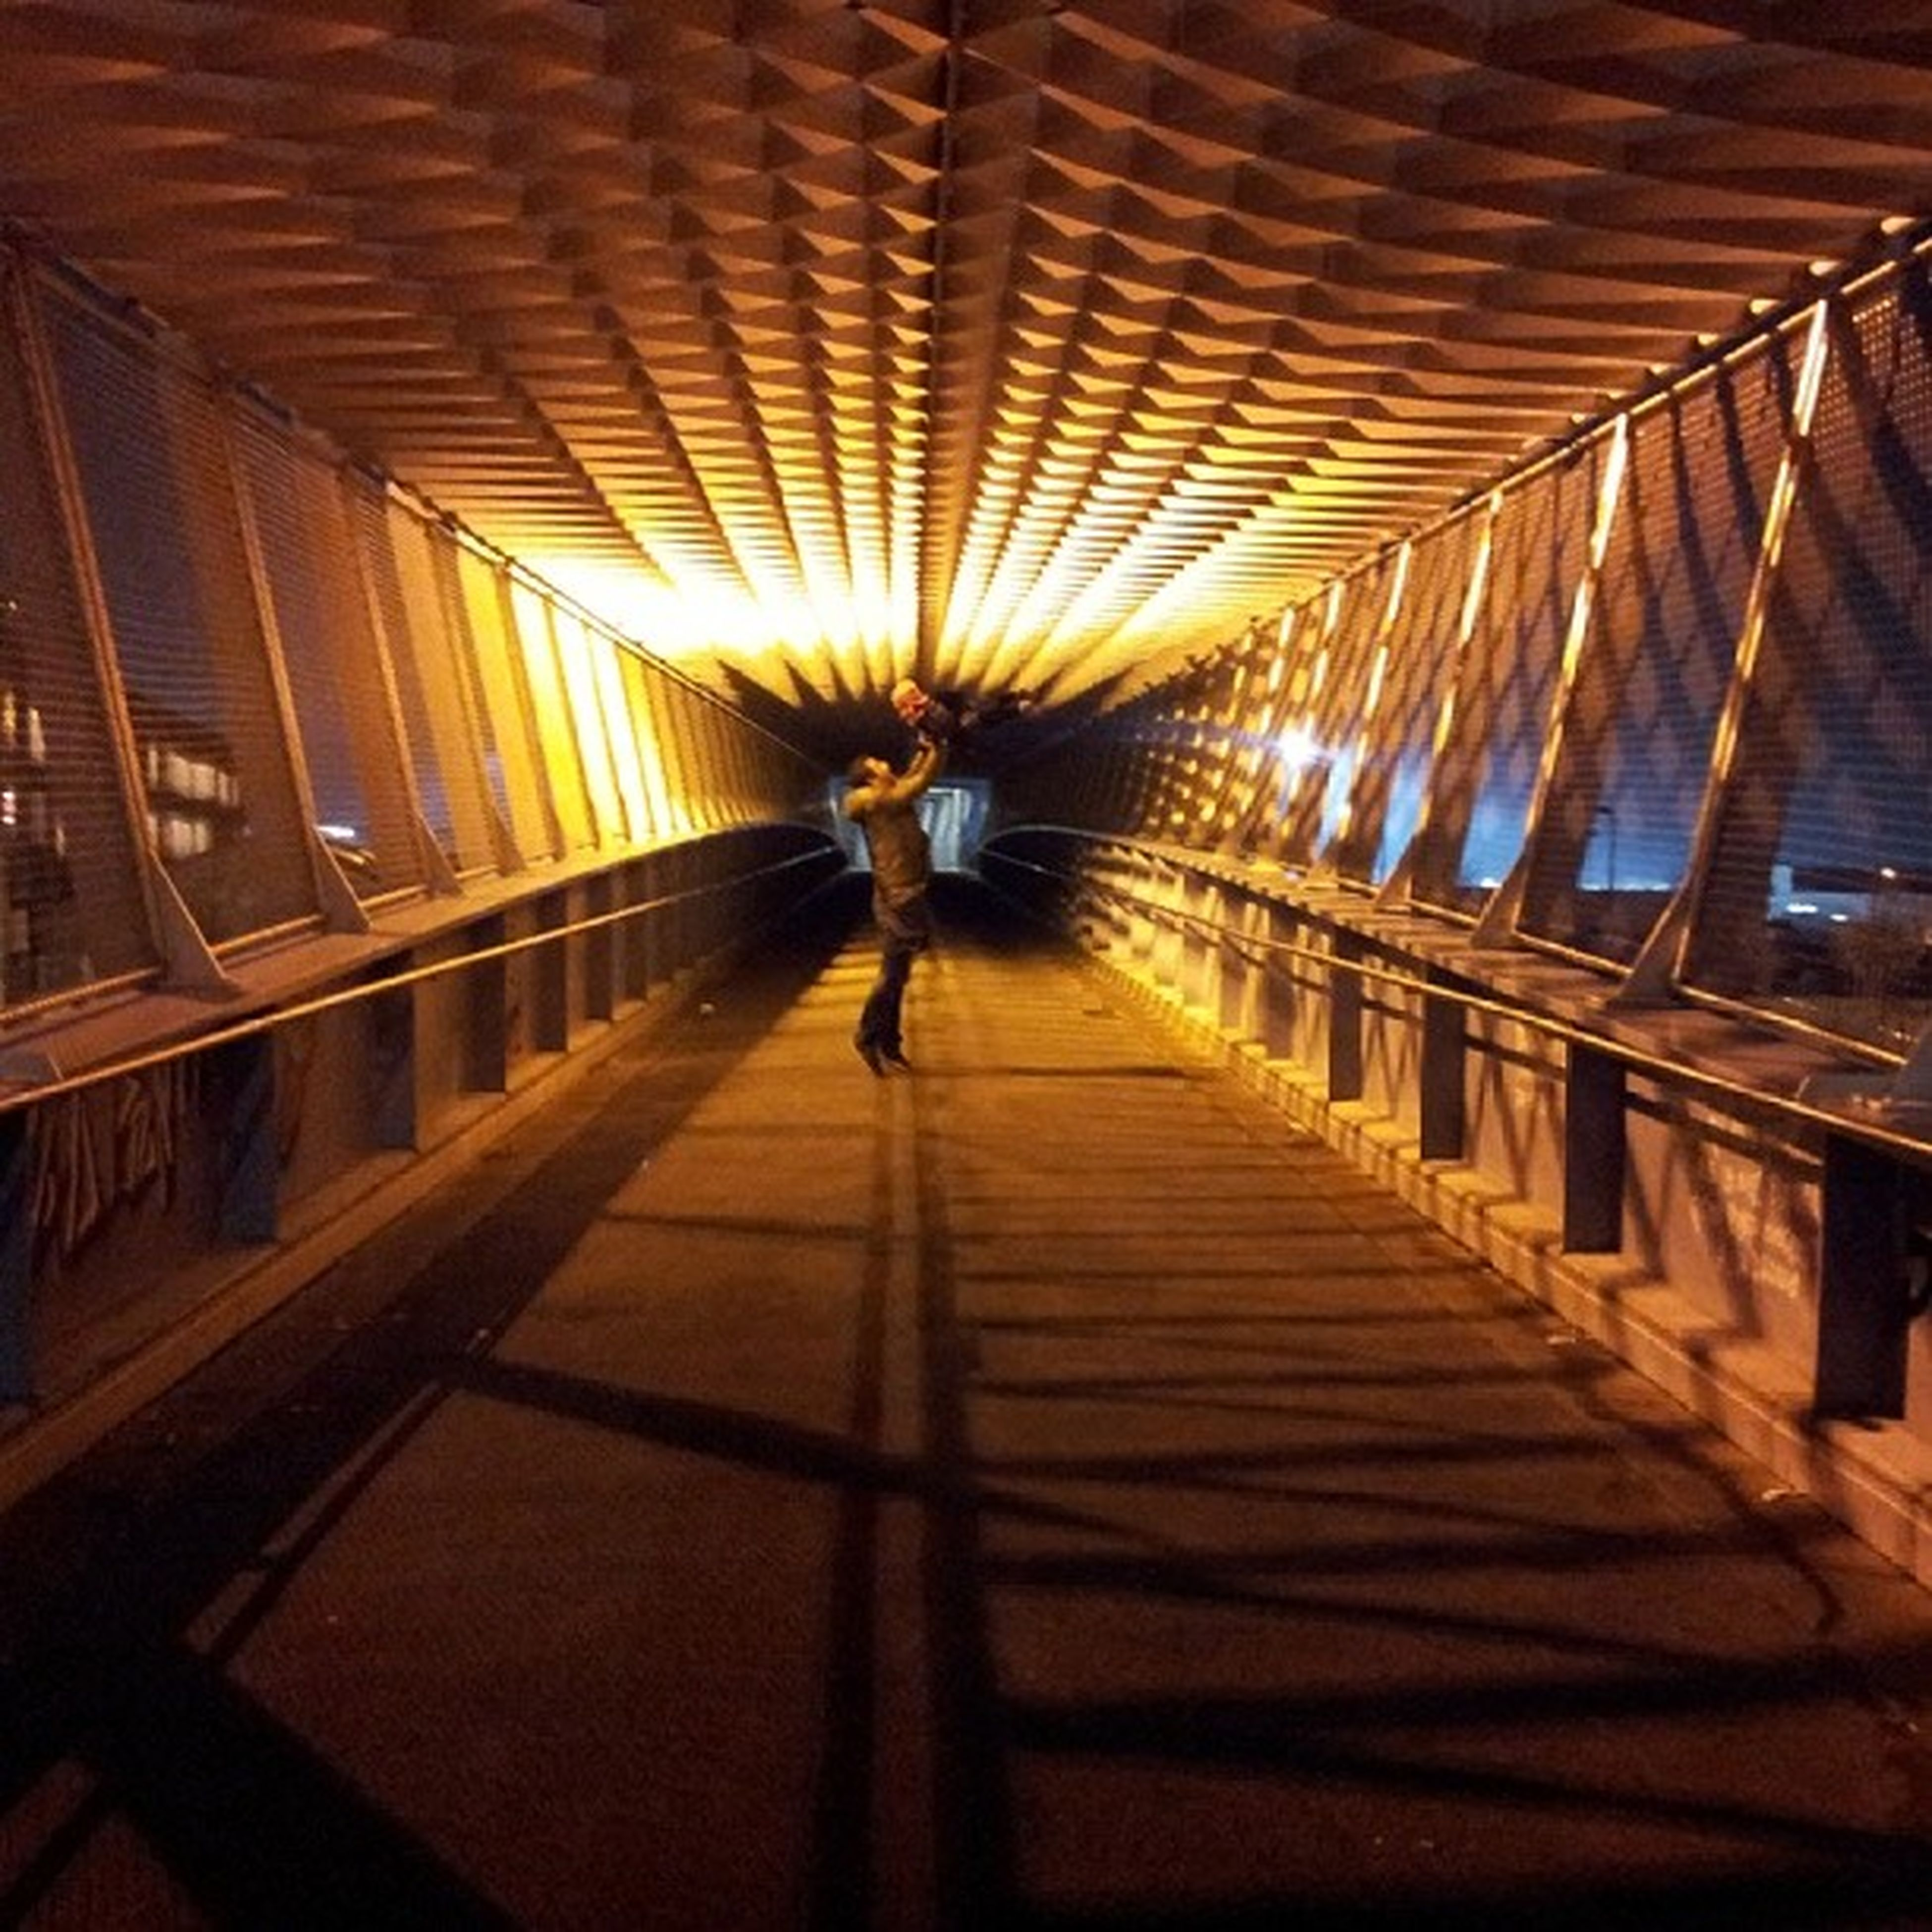 indoors, the way forward, ceiling, architecture, built structure, diminishing perspective, illuminated, lighting equipment, vanishing point, in a row, walking, railing, incidental people, pattern, shadow, transportation, sunlight, full length